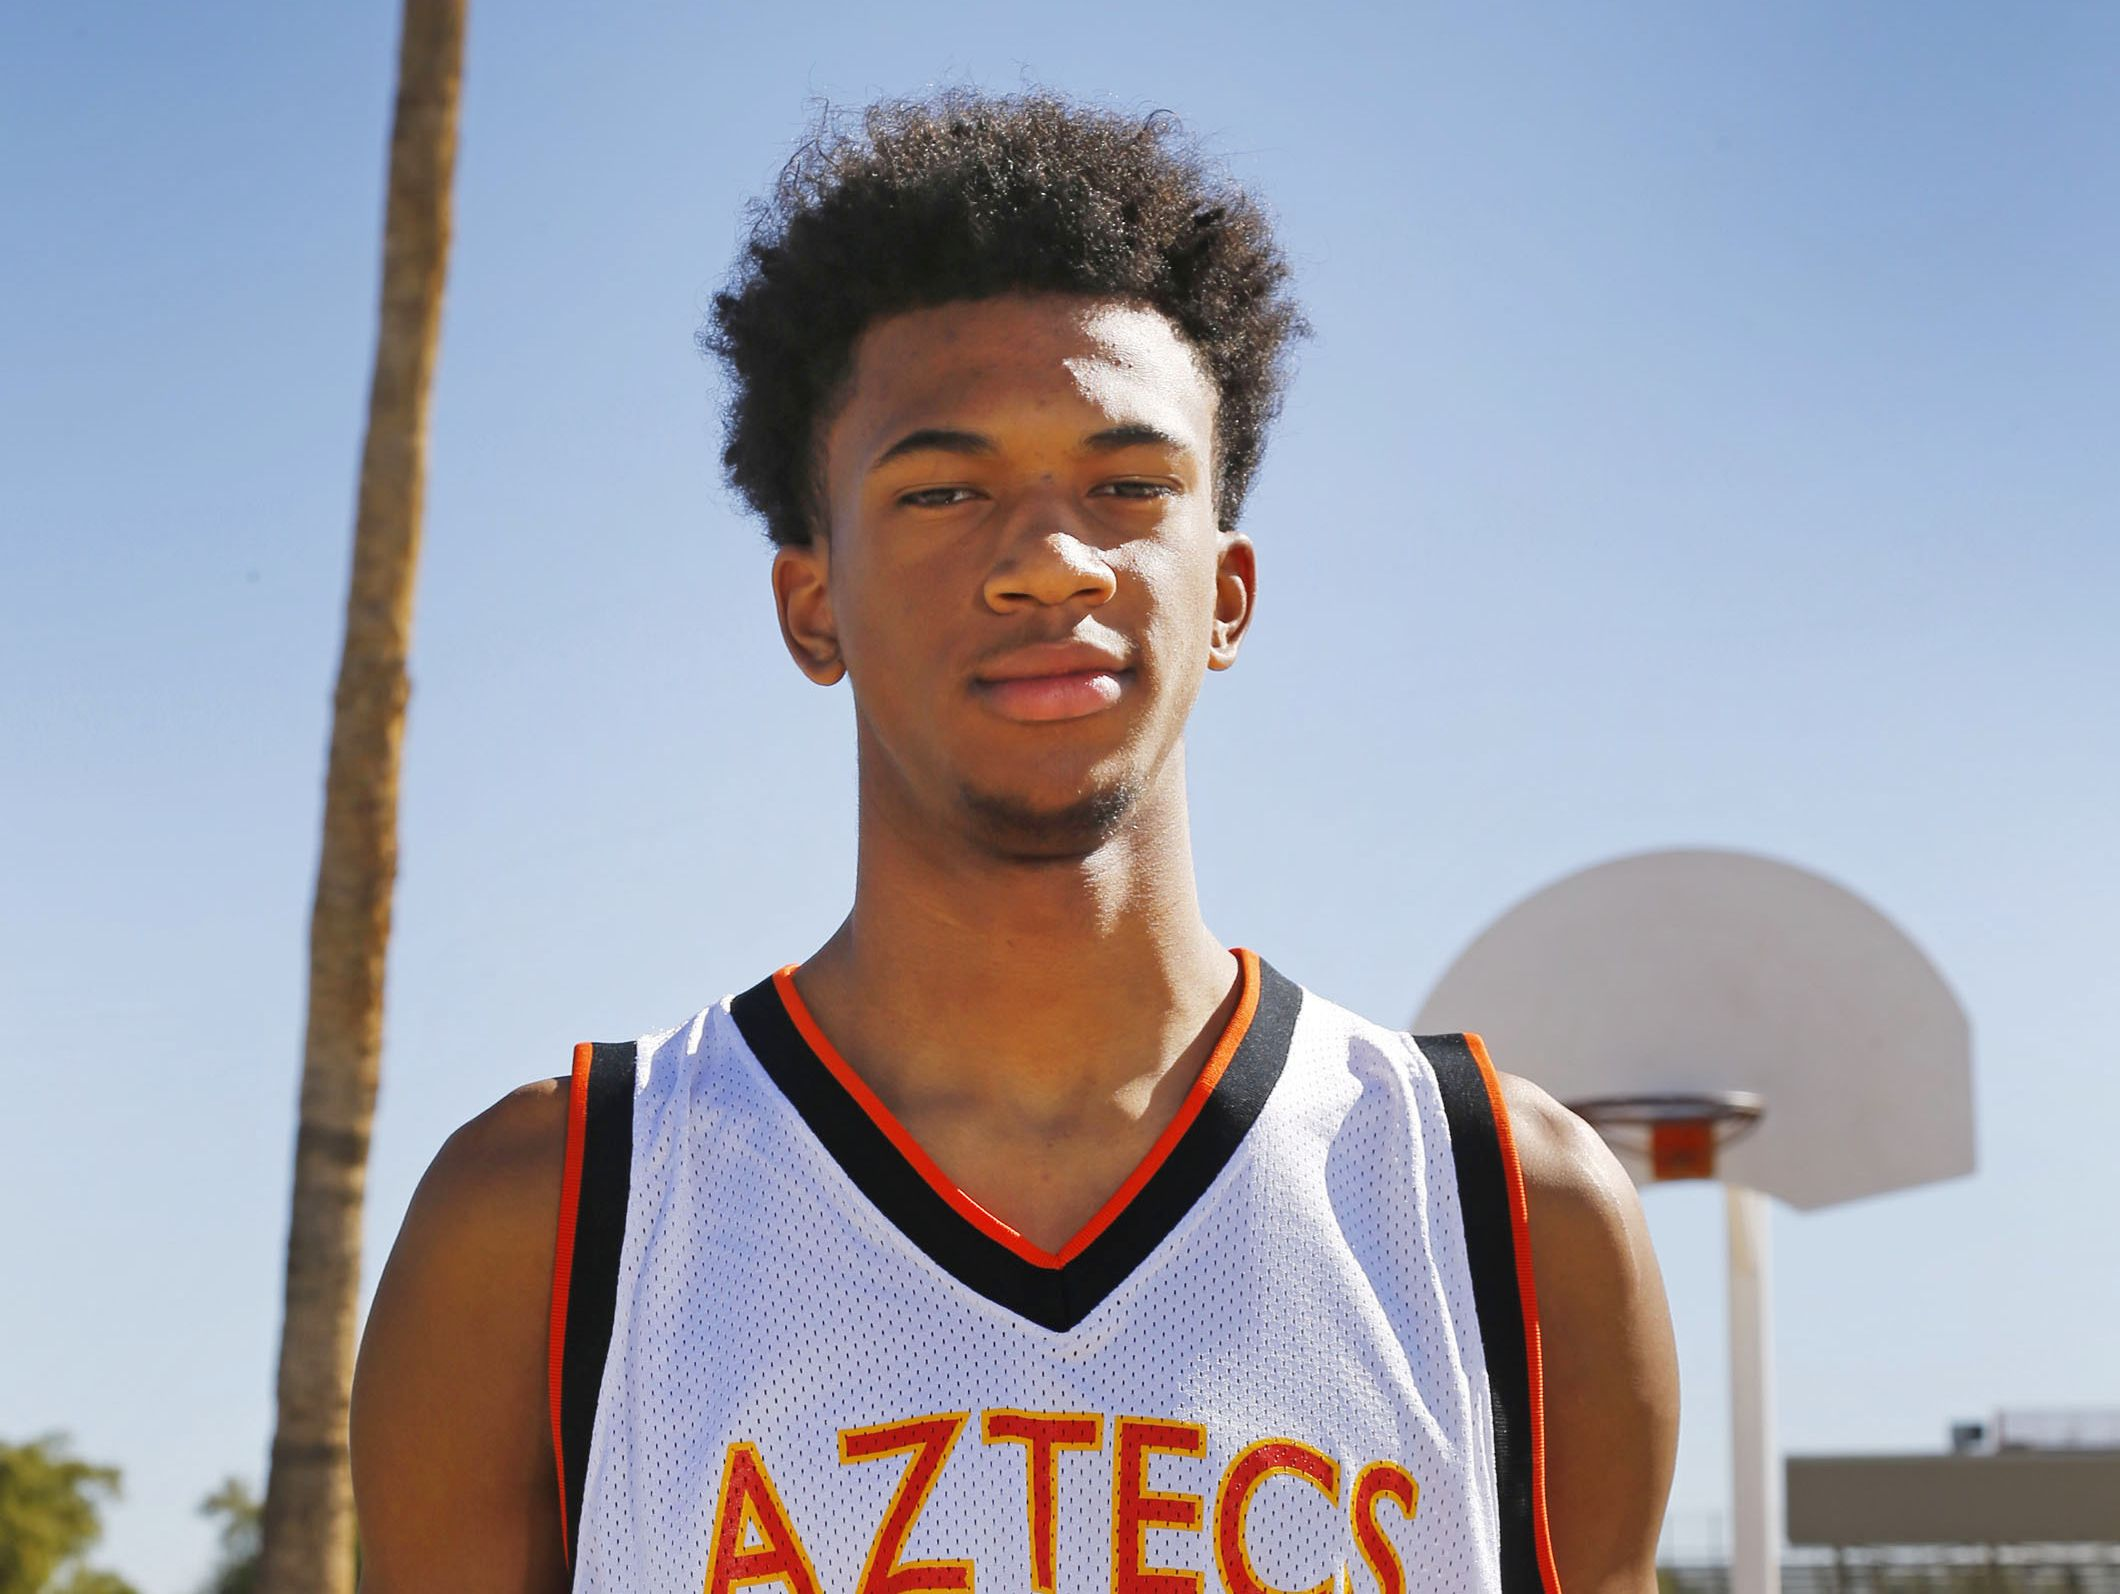 As a freshman Marvin Bagley led Tempe Corona del Sol to a fourth consecutive Division I championship and was named Player of the Year by azcentral sports.